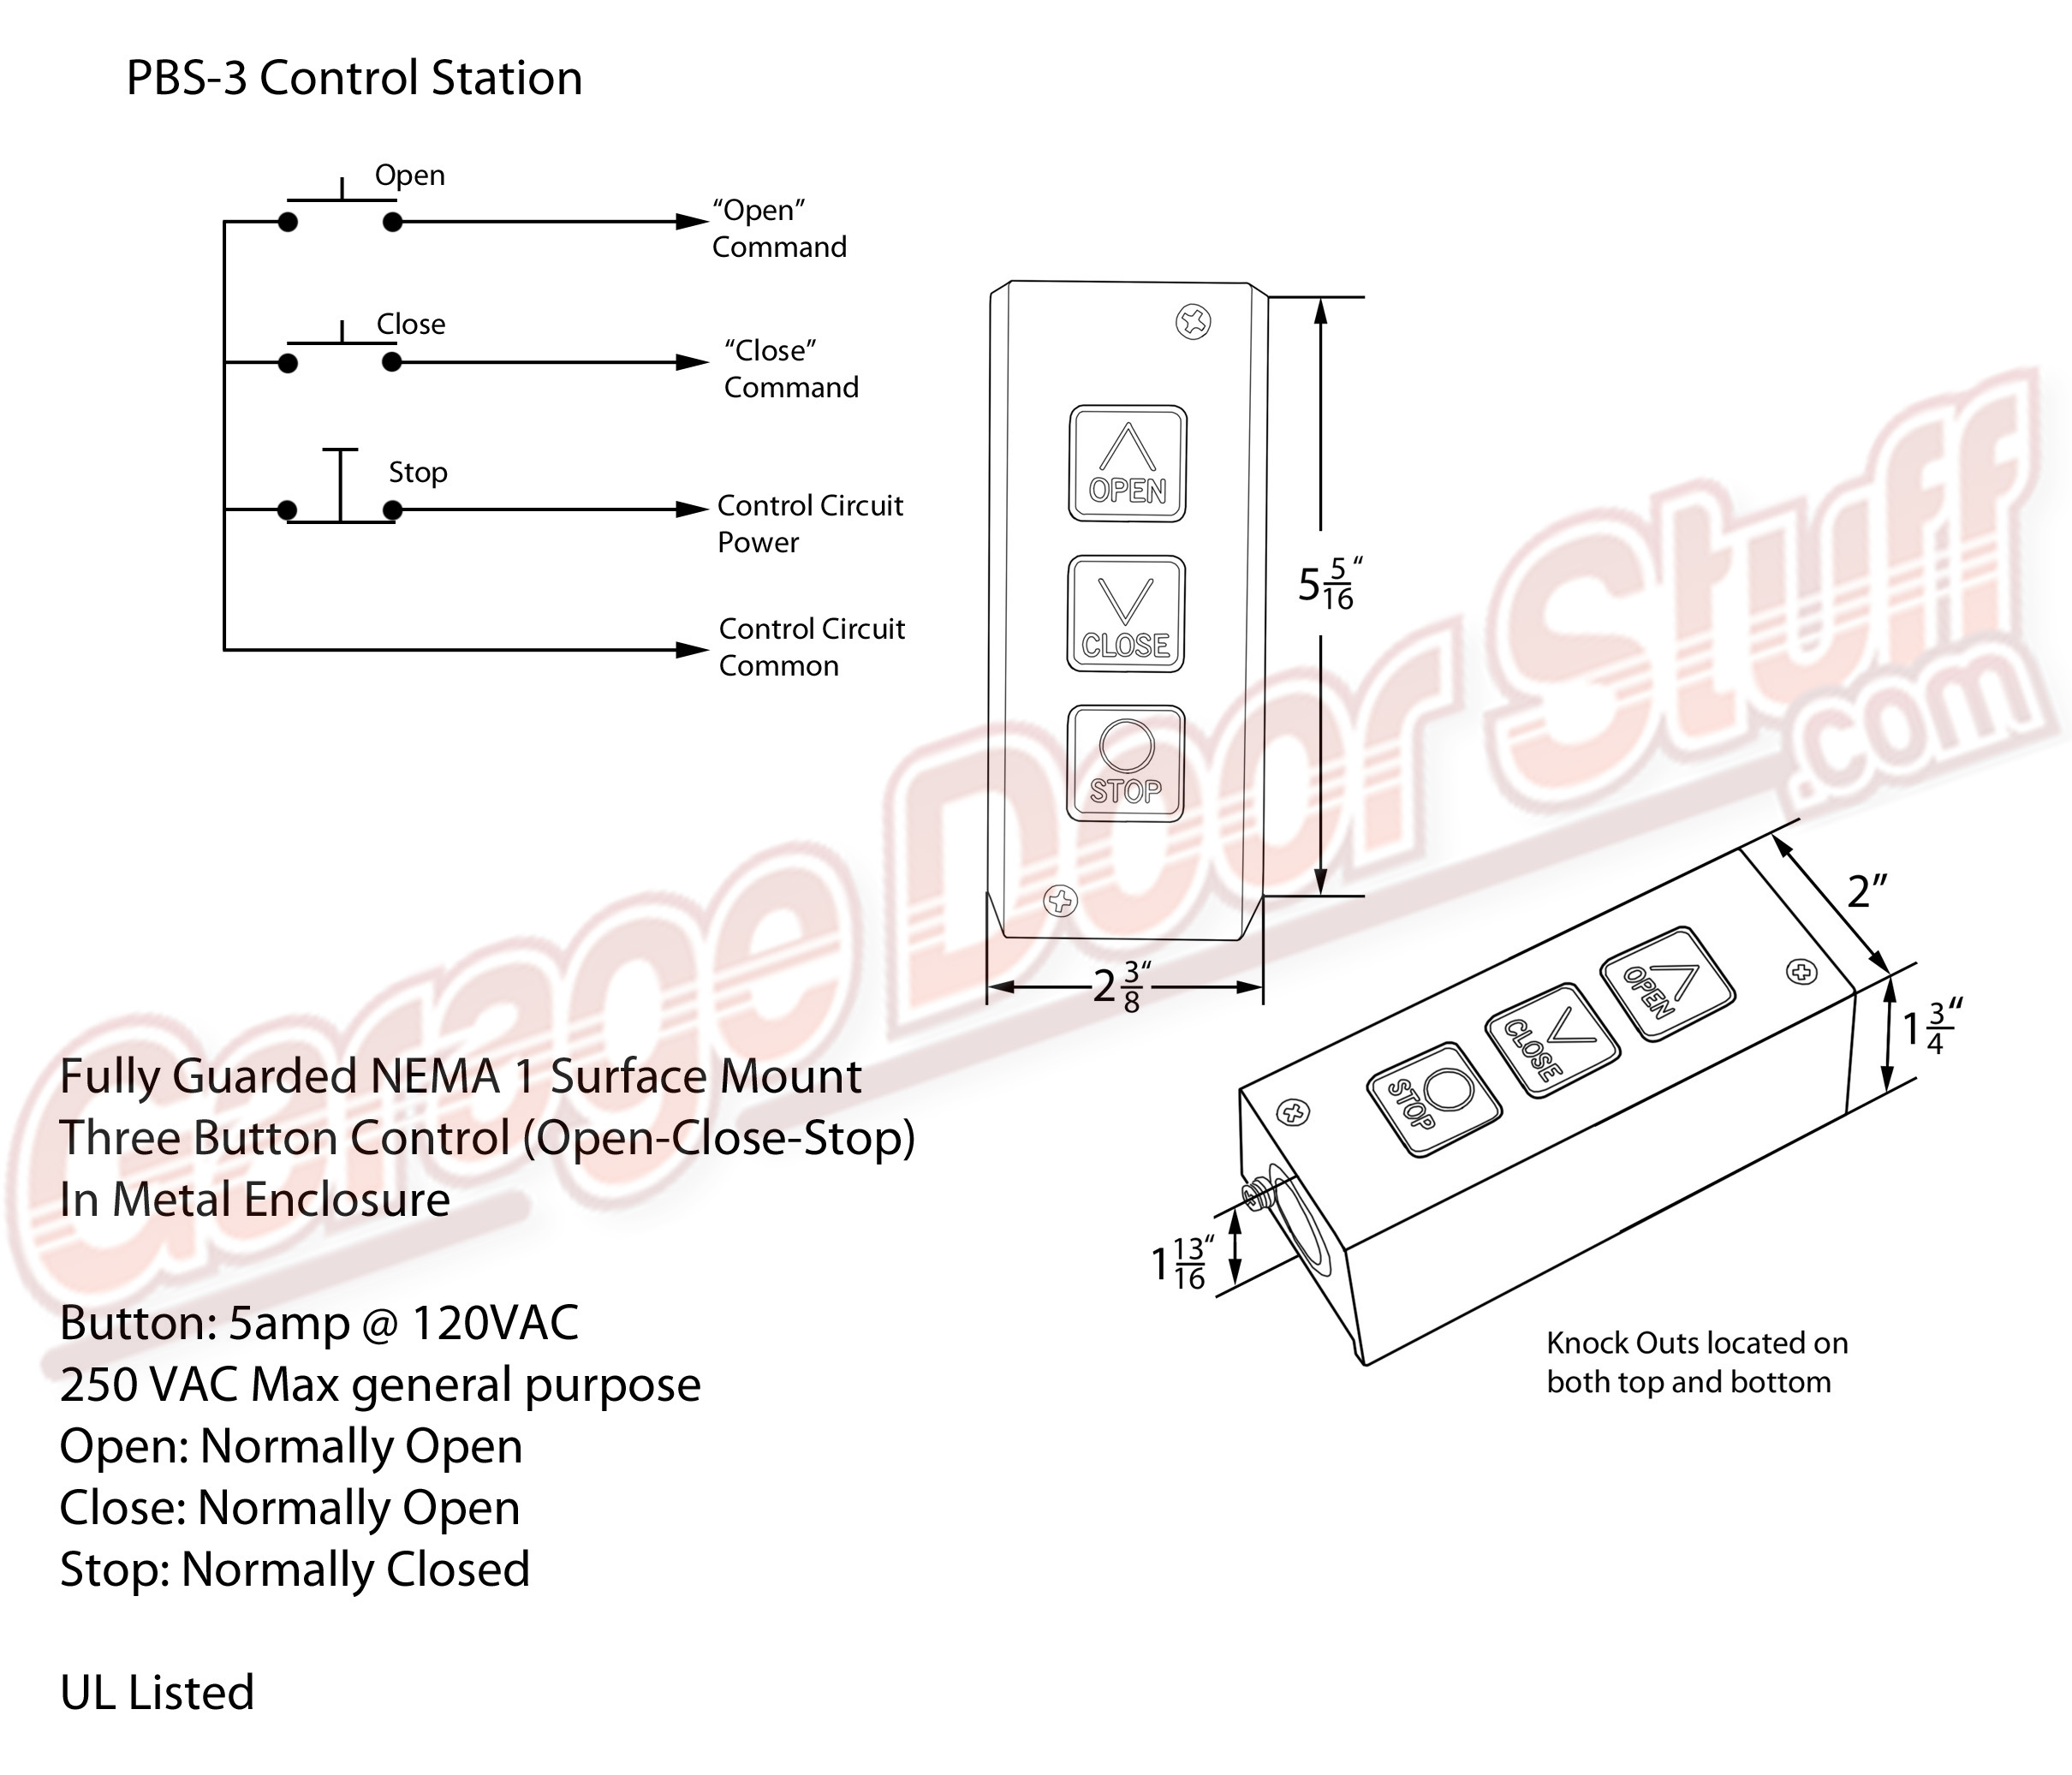 third switch overhead door open close stop control open close stop switch wiring diagram at mifinder.co